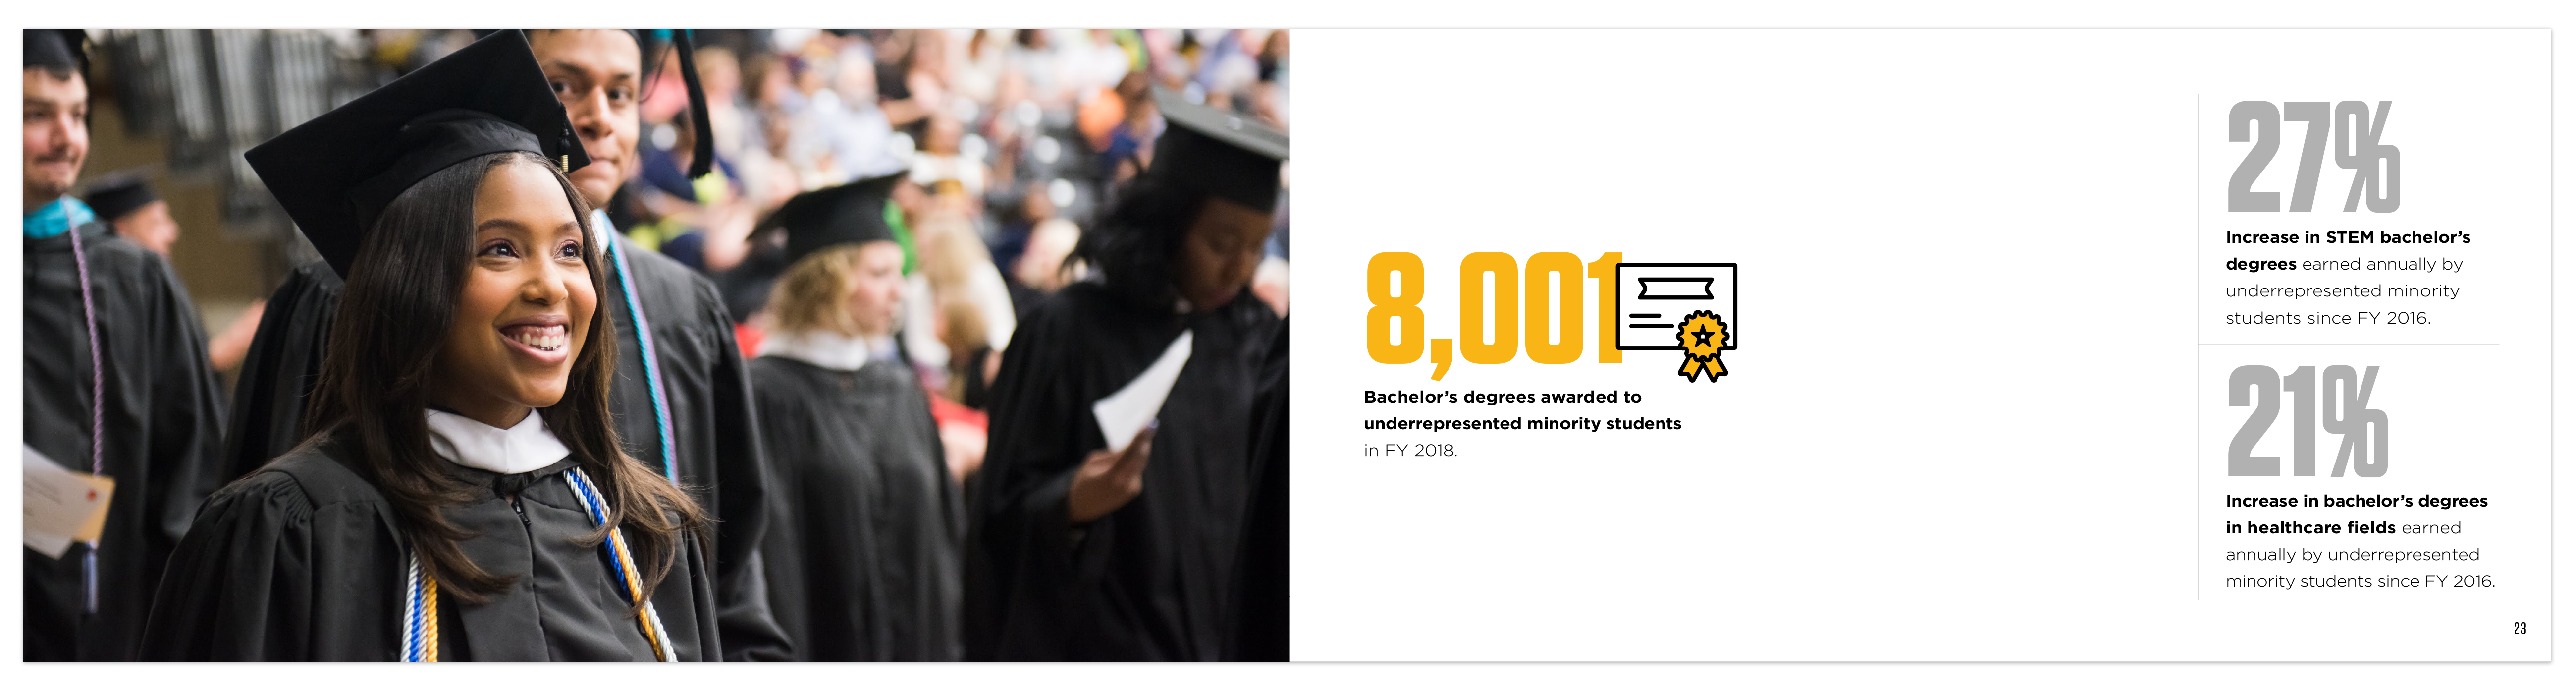 spread with data on degrees awarded to underrepresented minority students